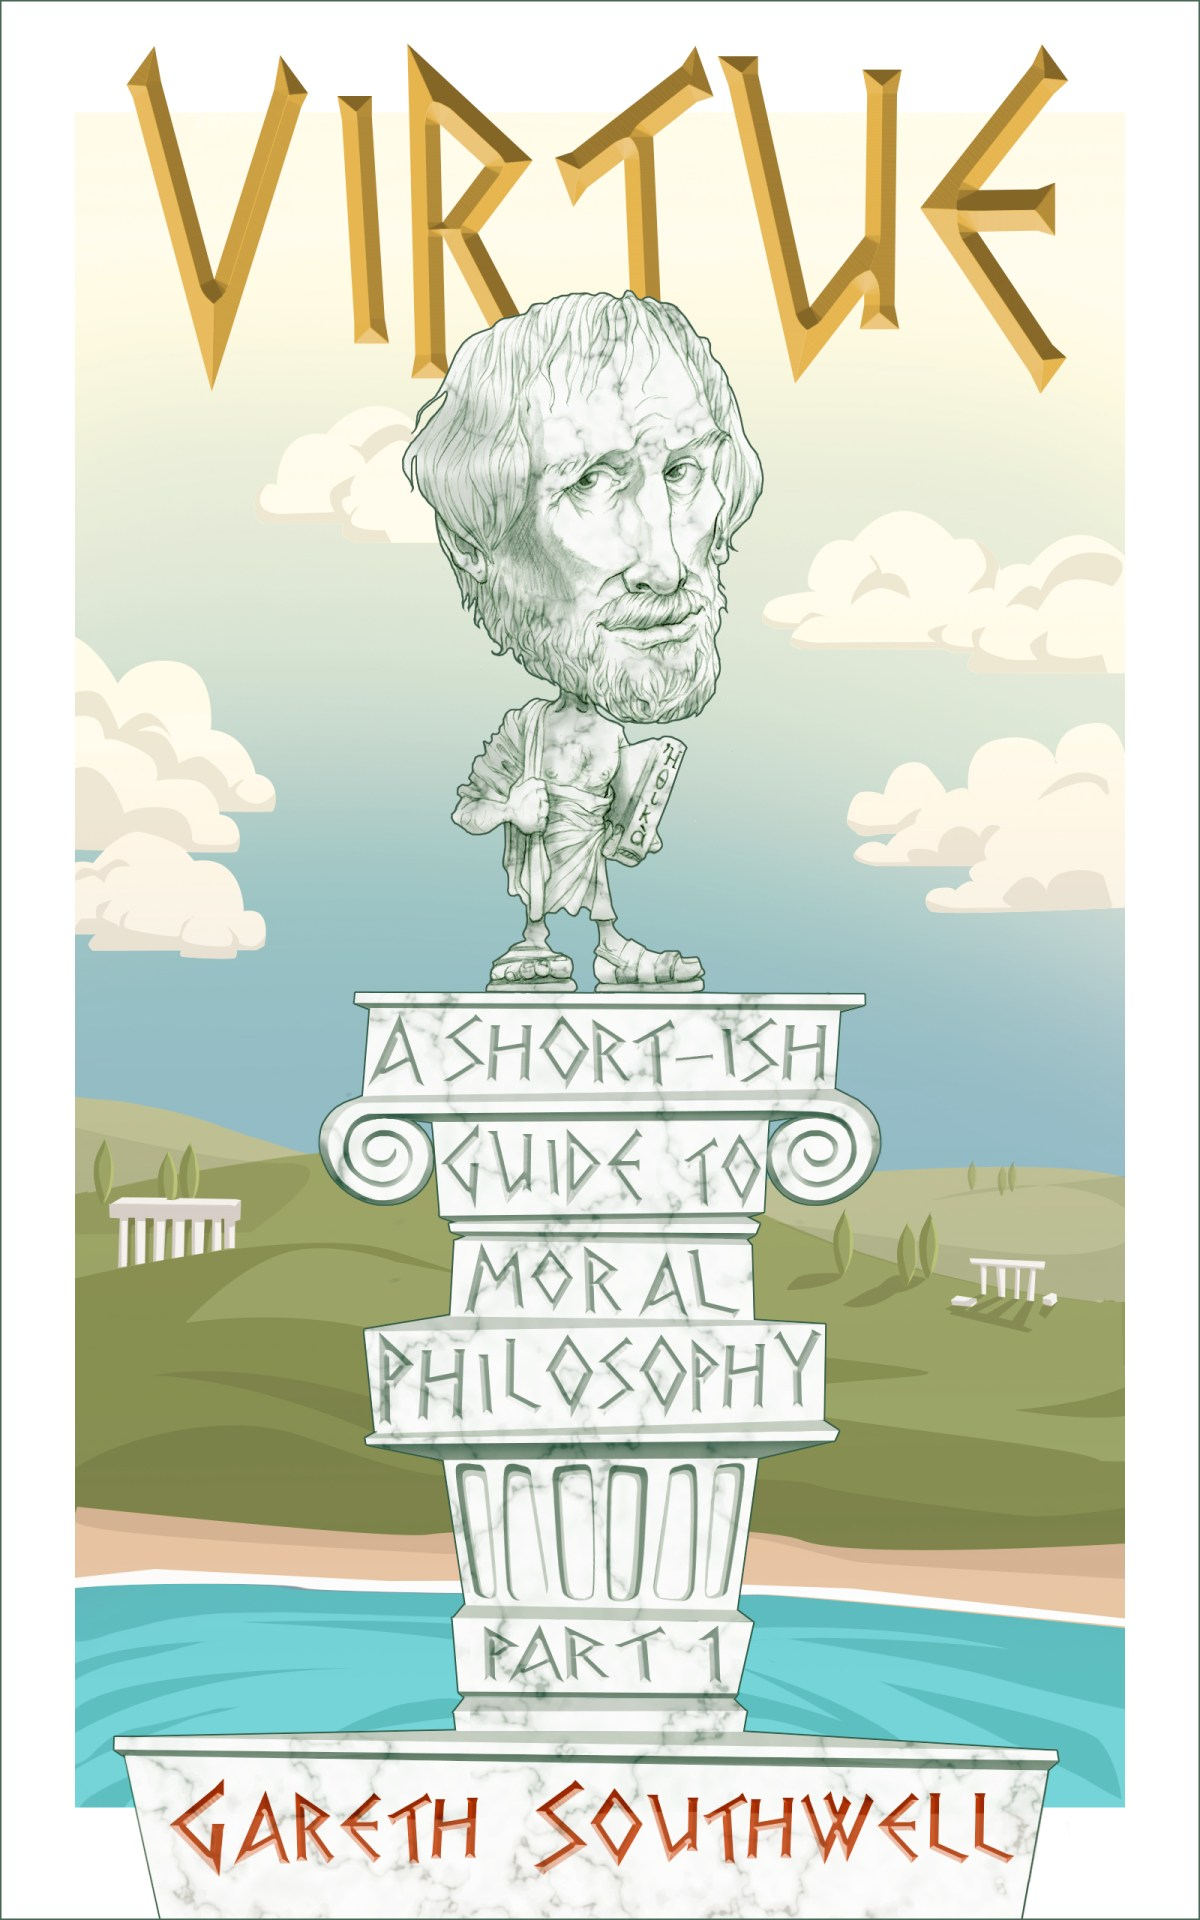 Virtue: A Short(ish) Guide to Moral Philosophy – introductory Philosophy books by Gareth Southwell